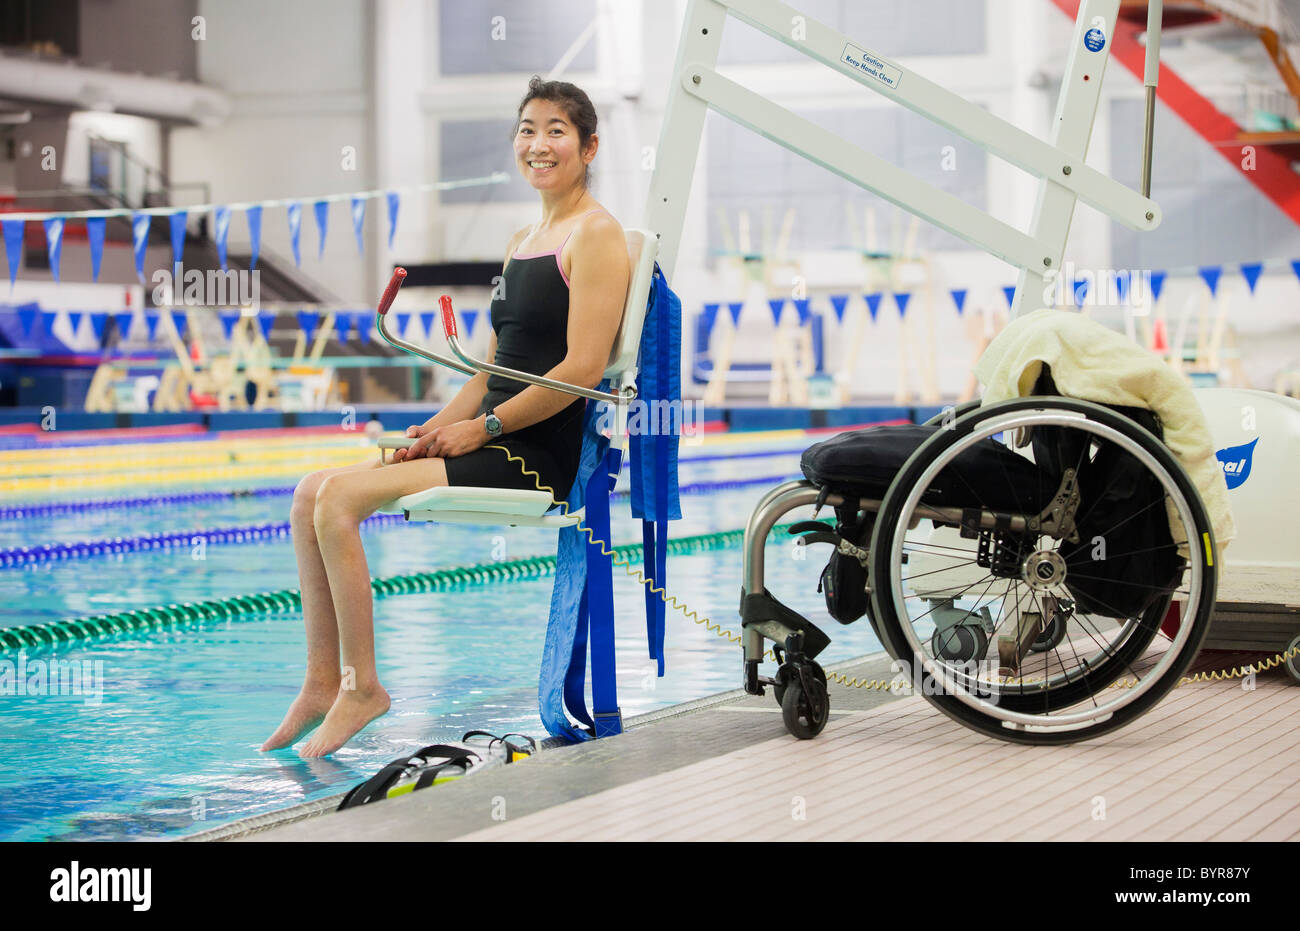 lift chairs edmonton alberta lowes patio a paraplegic woman enters swimming pool on with